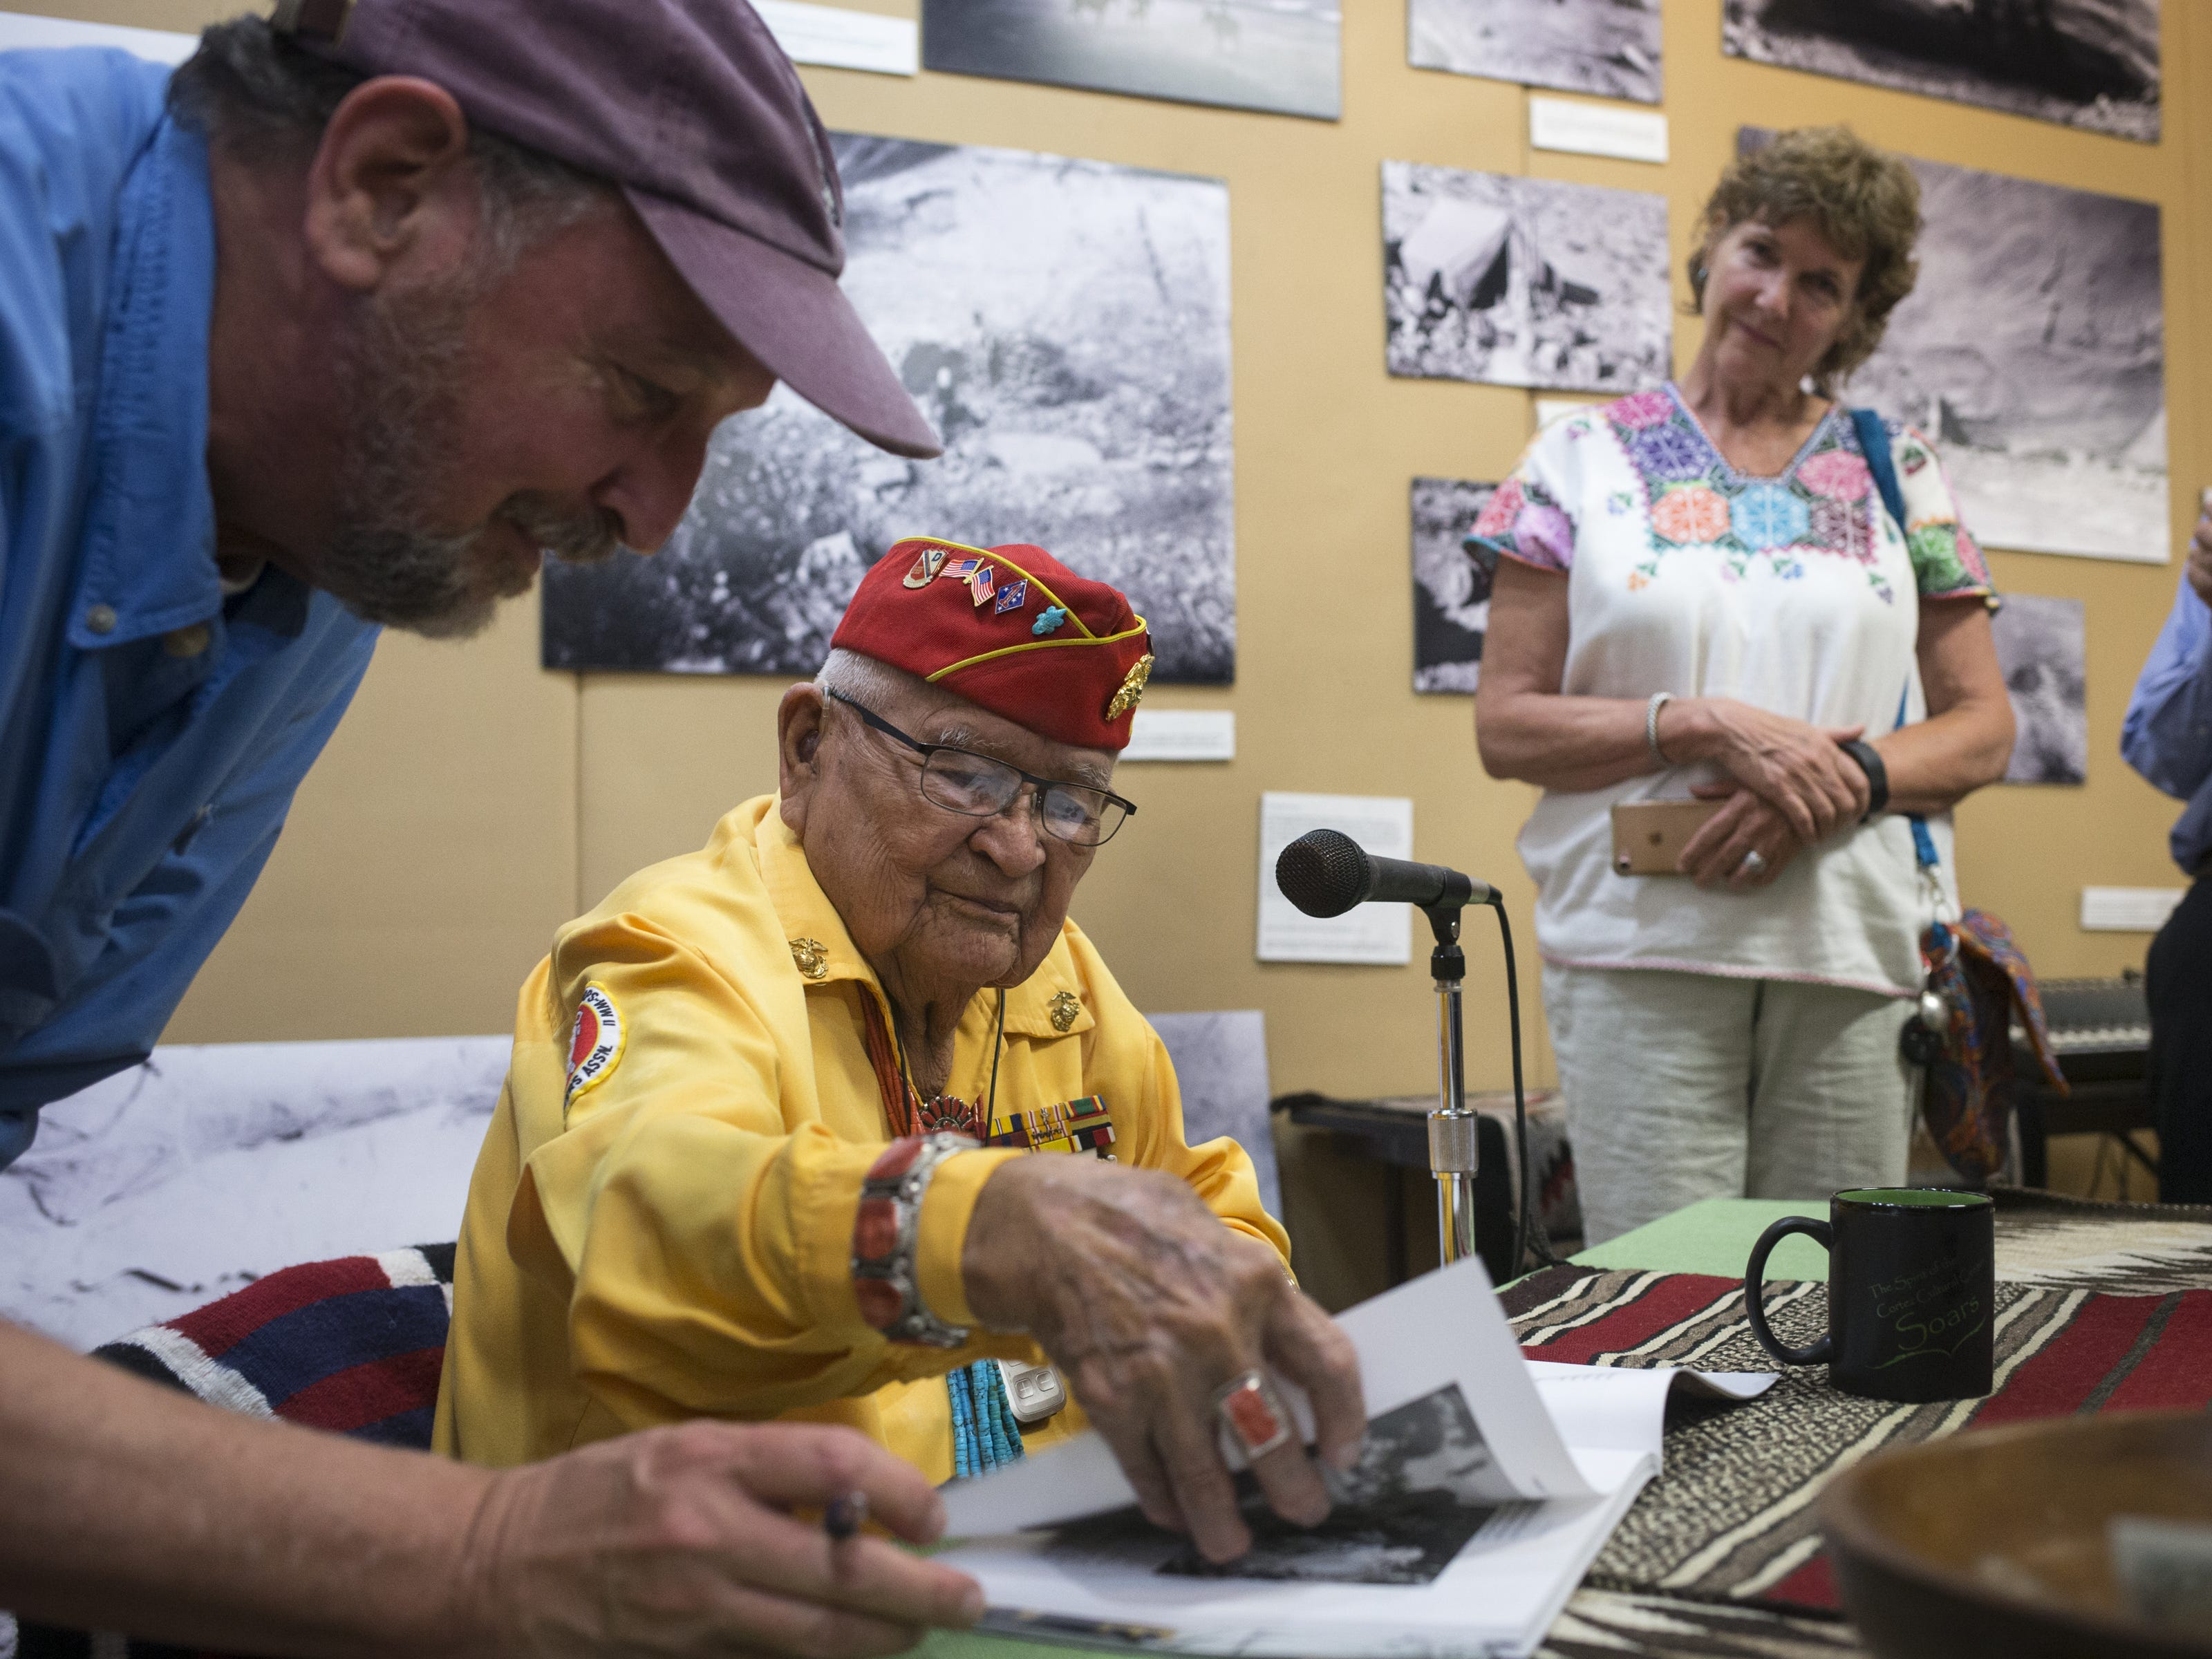 Navajo Code Talker Sam Sandoval signs a book on Aug. 14, 2018, after speaking at the Cortez Cultural Center in Cortez, Colorado.